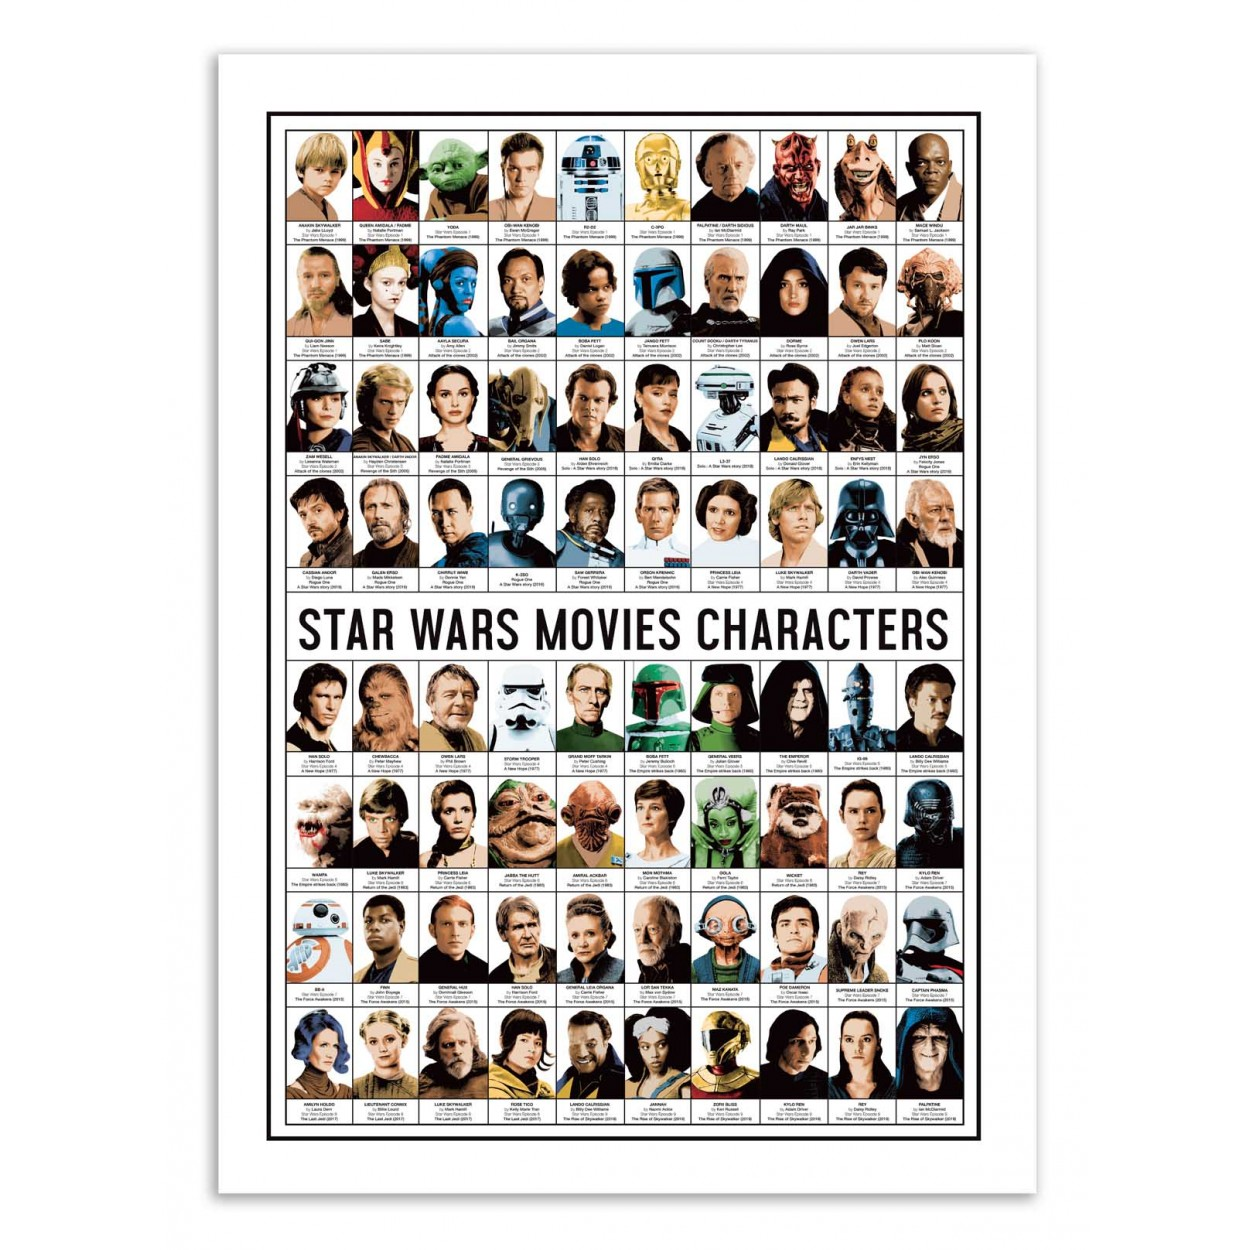 STAR WARS MOVIES CHARACTERS - Affiche d'art 50 x 70 cm